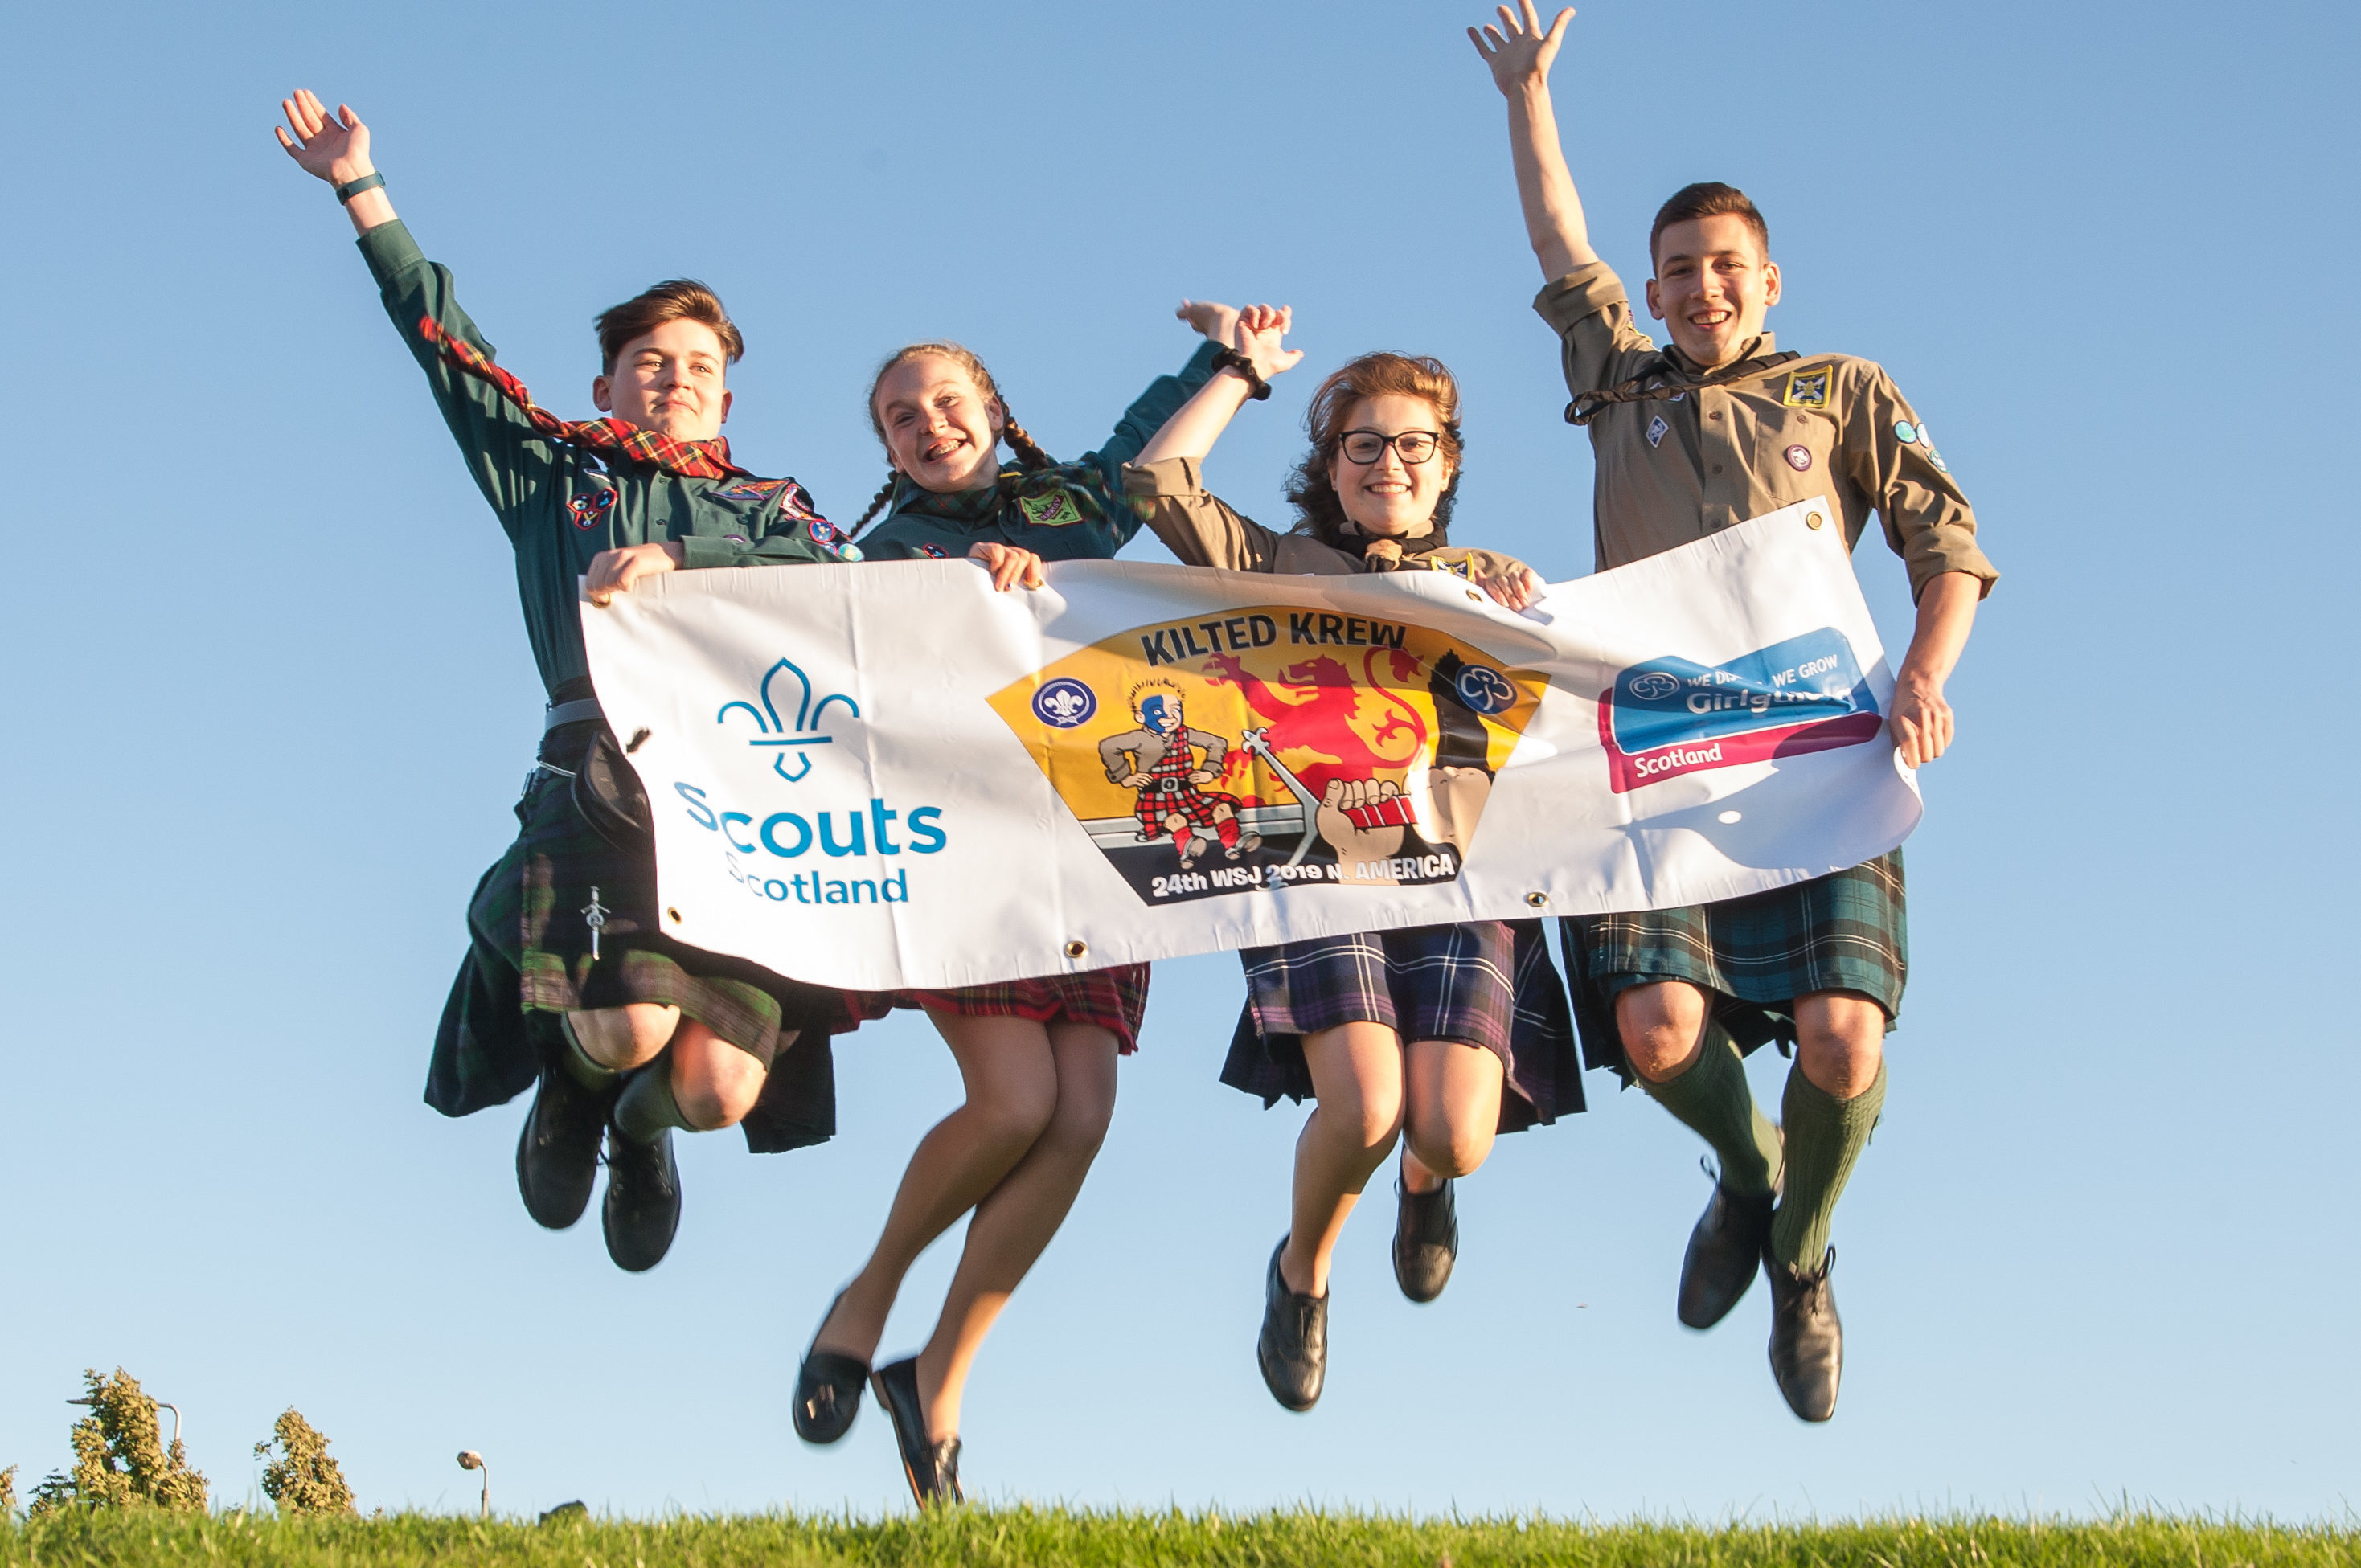 Scouts Mark Allen, Abbie Porter, Eva Welsh, and Fraser O'Brien at the launch (Tina Norris)